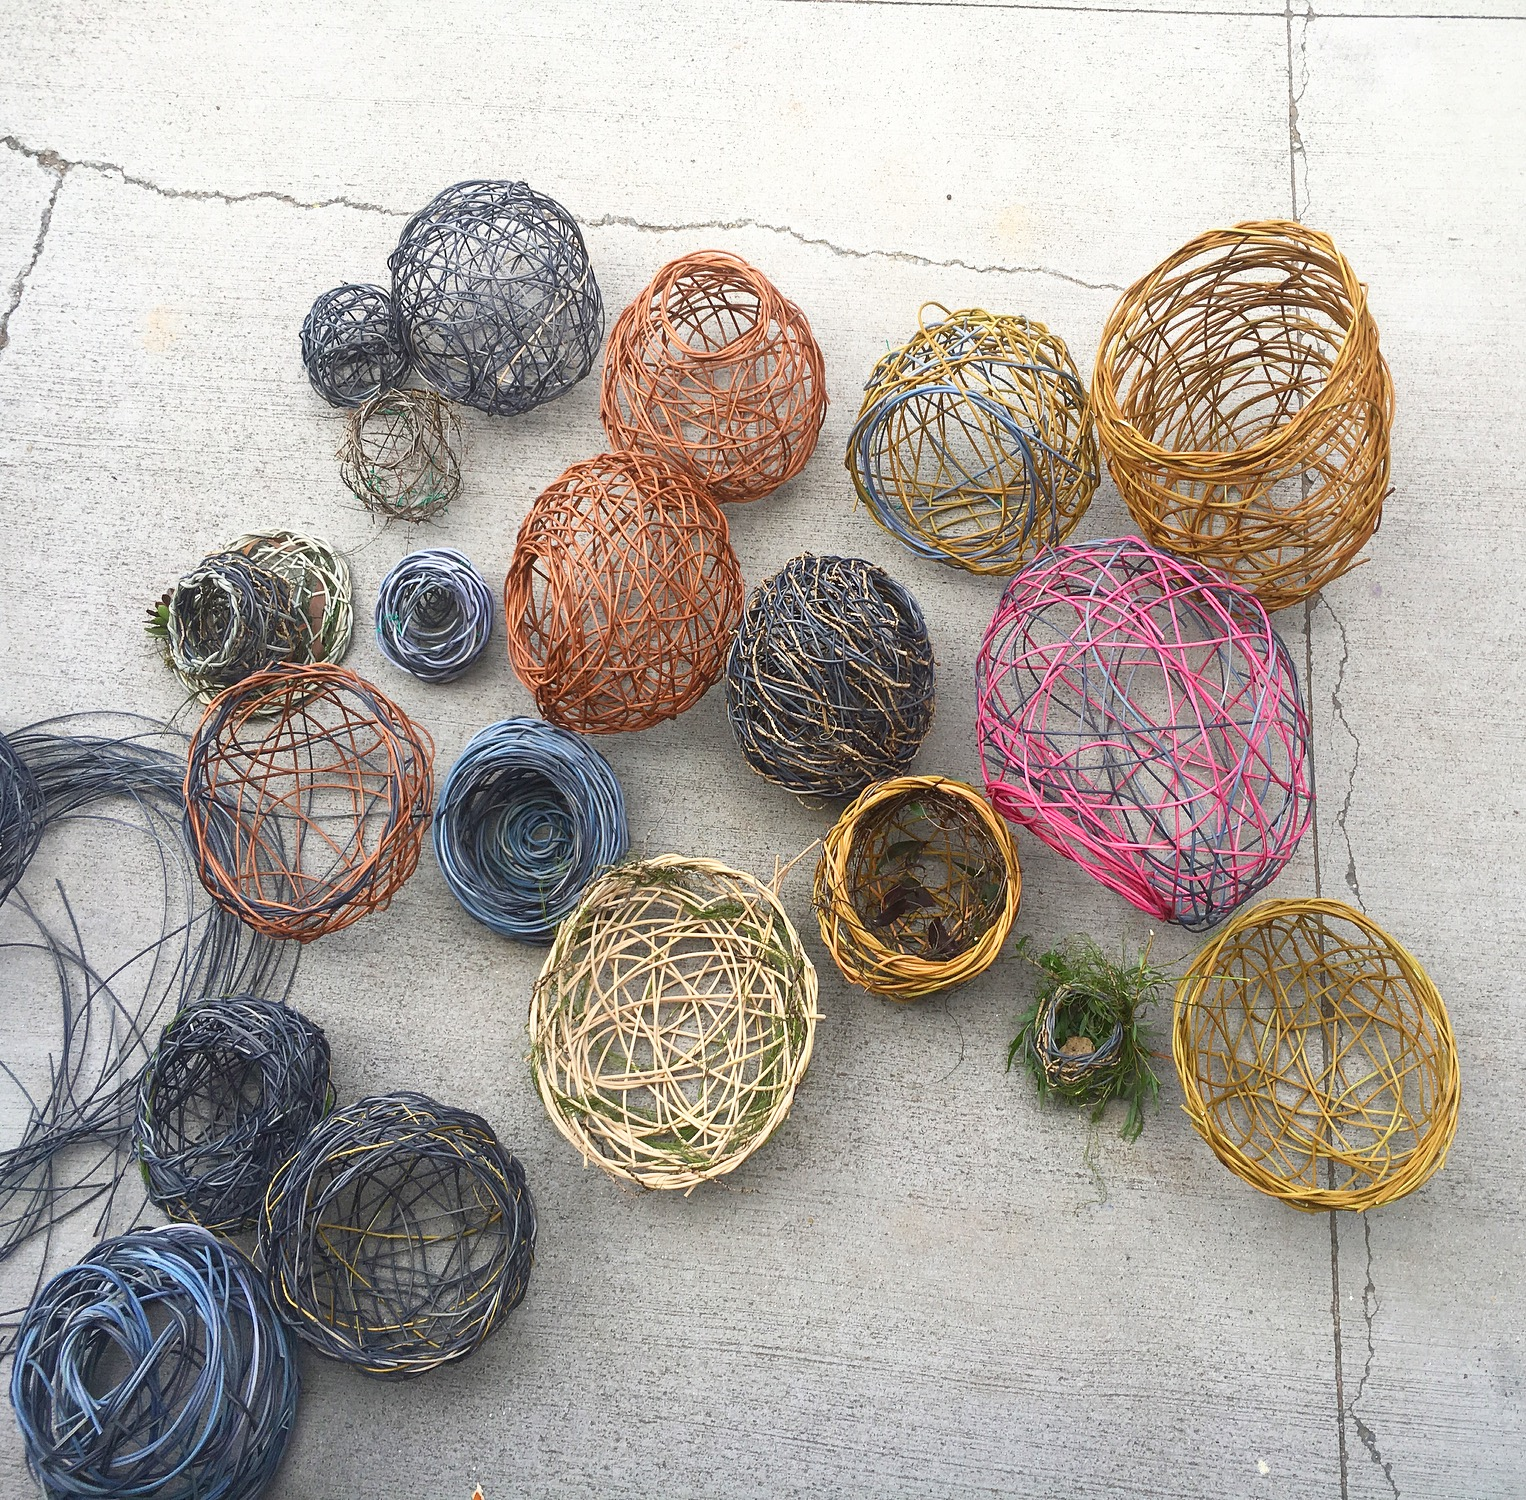 Random Weave Basketry - My Rural Retreat - Guyra NSW